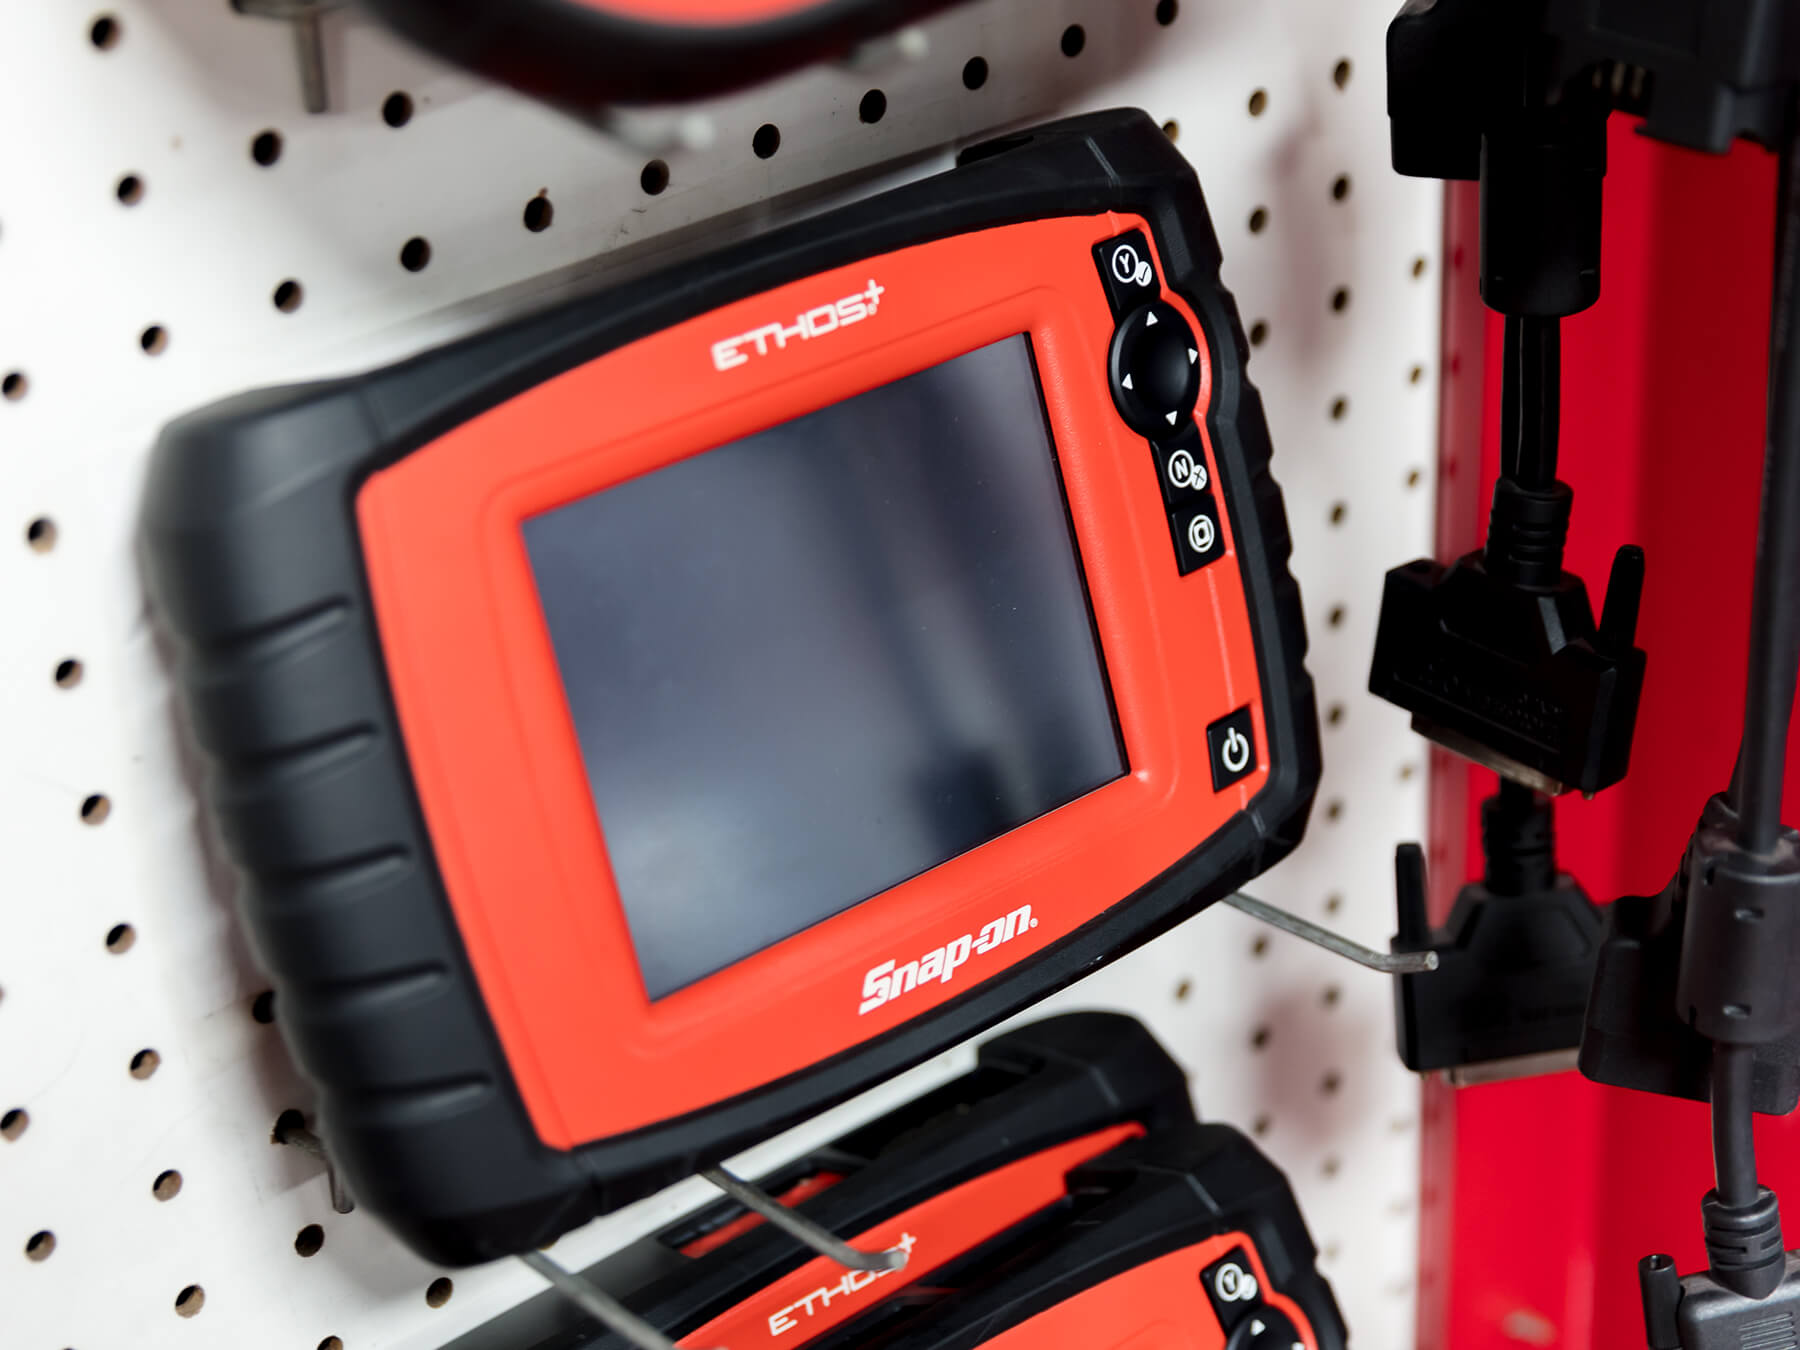 Snap-on scan tool hanging on the wall